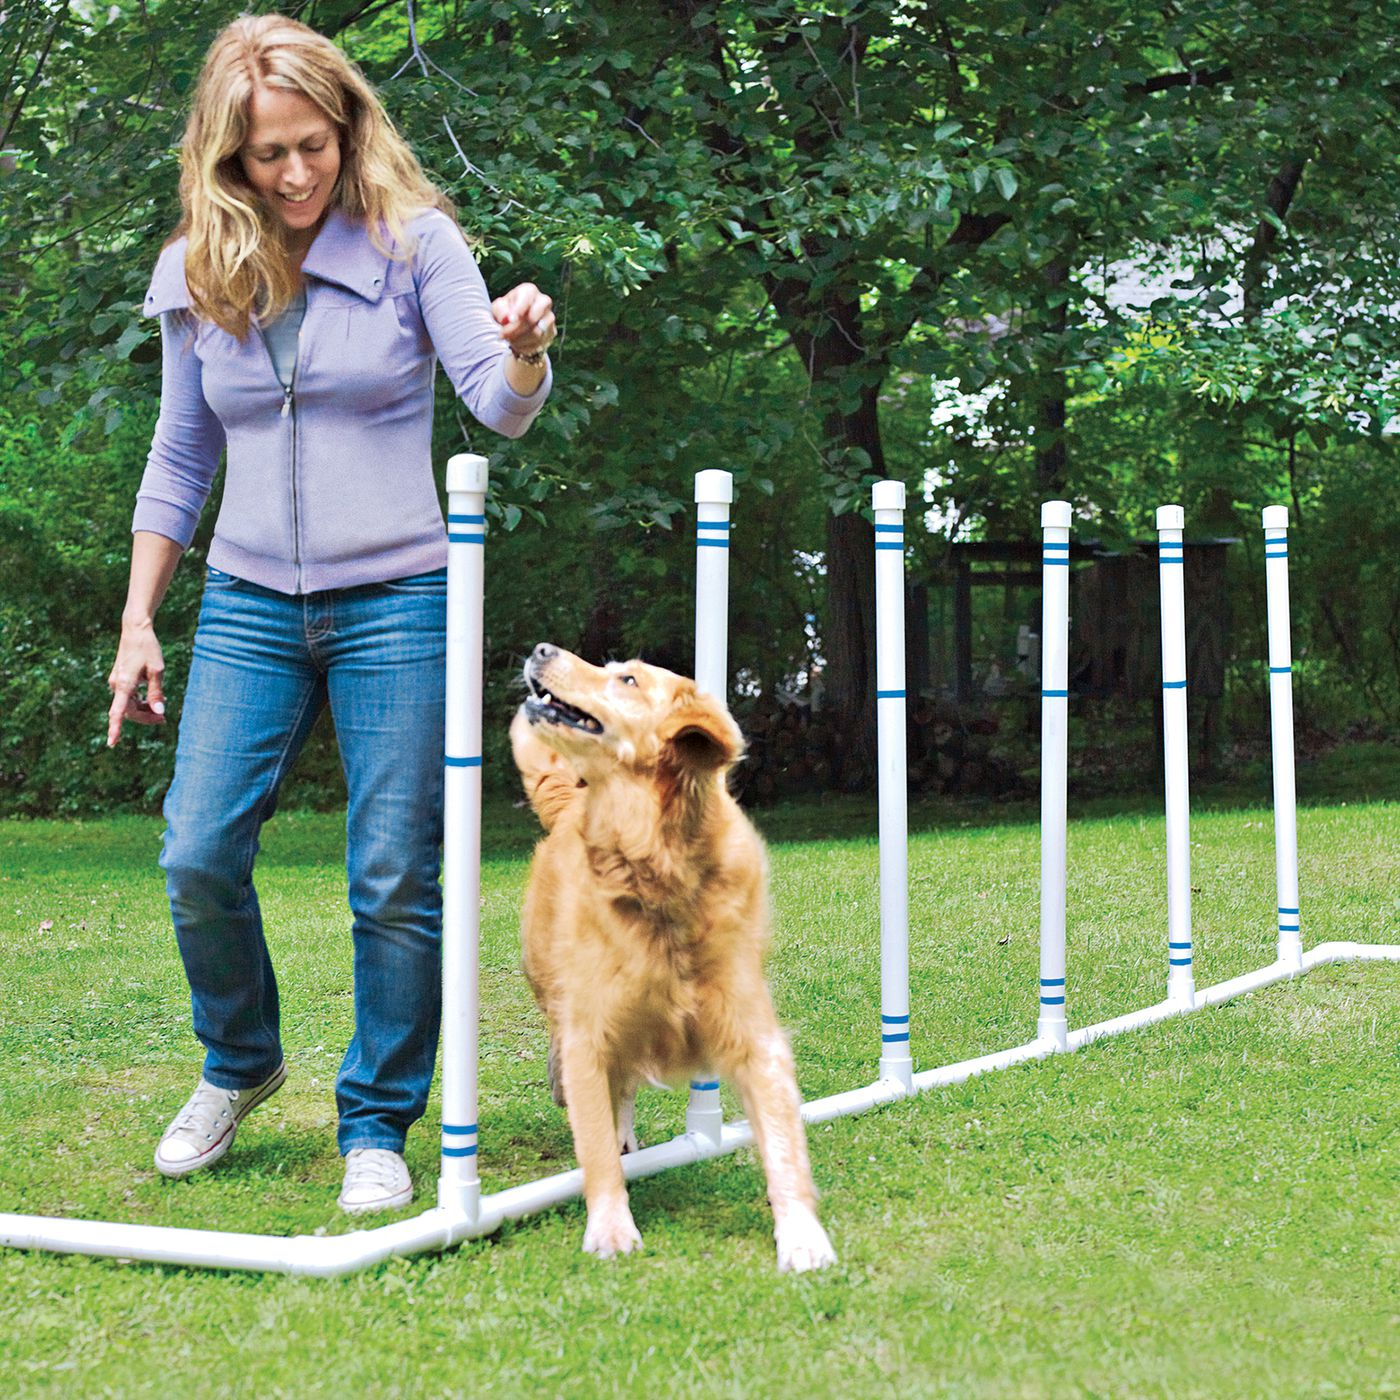 How To Build A Diy Dog Agility Course This Old House